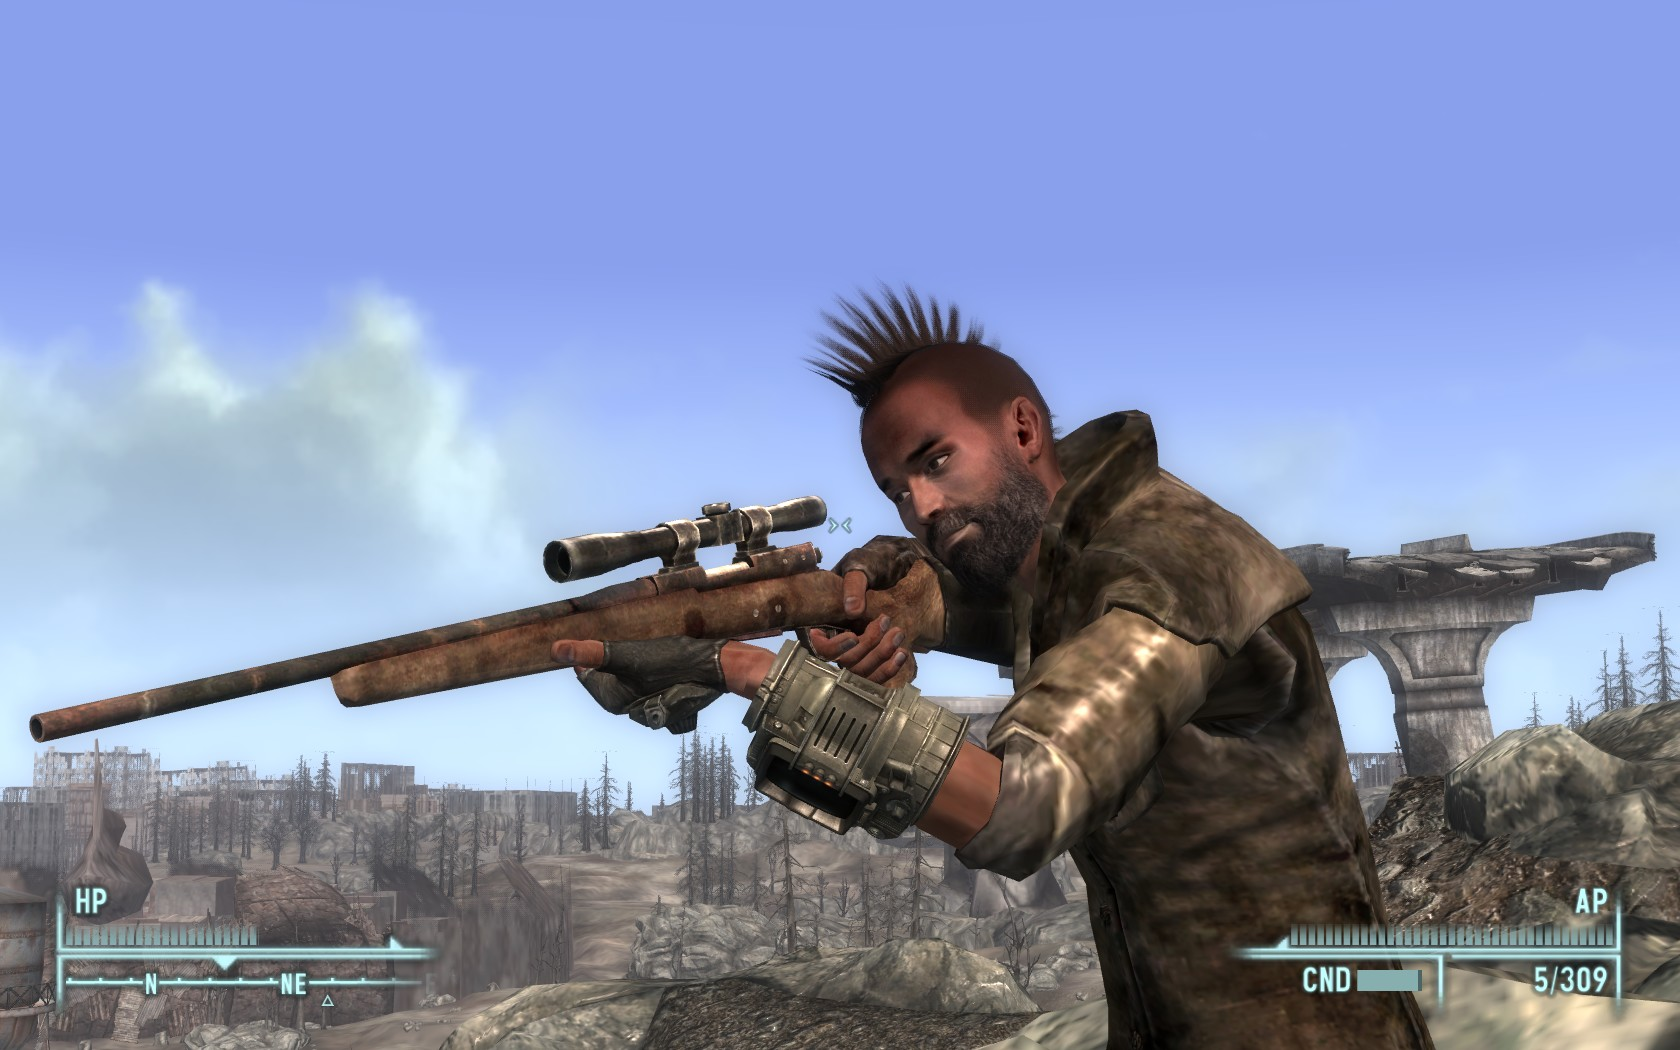 Scoped Hunting Rifle Unique Ol Painless at Fallout3 Nexus - mods and community